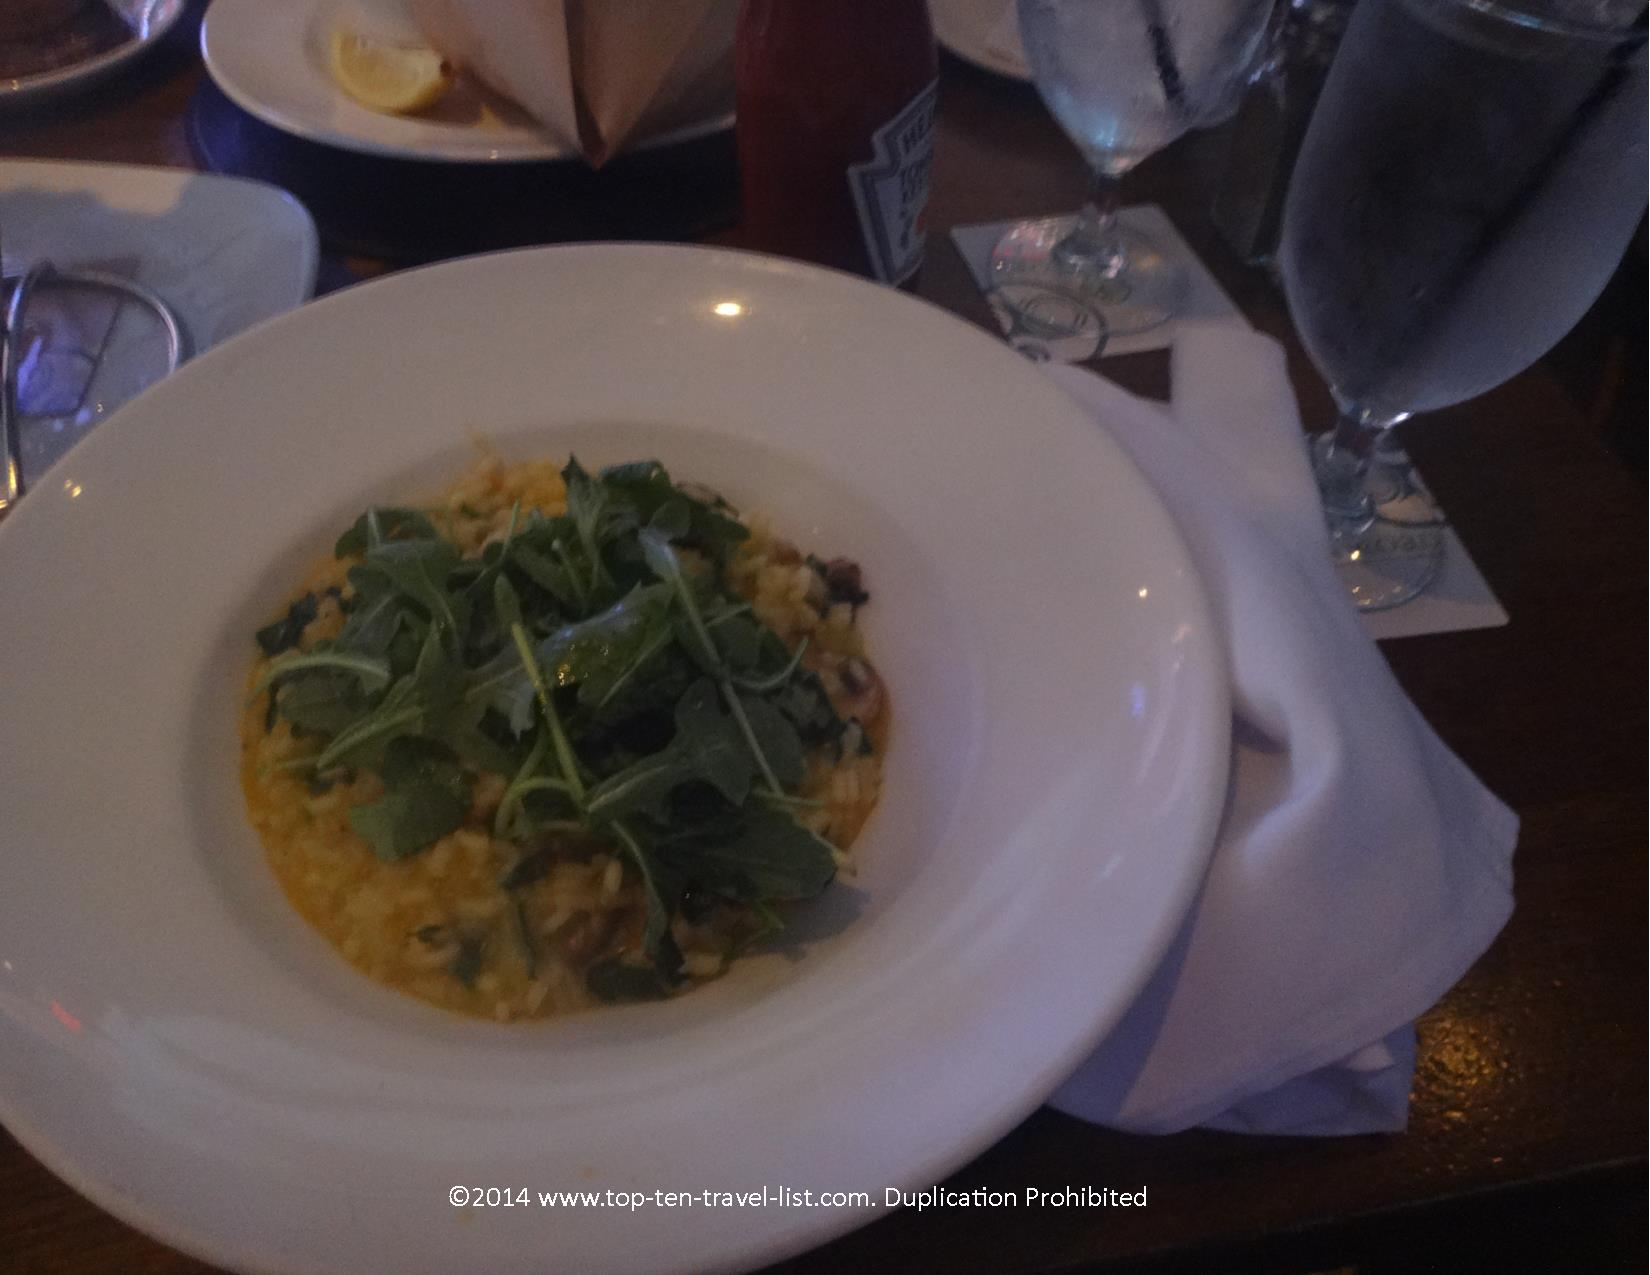 Butternut Squash risotto at Raglan Road Irish Pub in Orlando, Florida